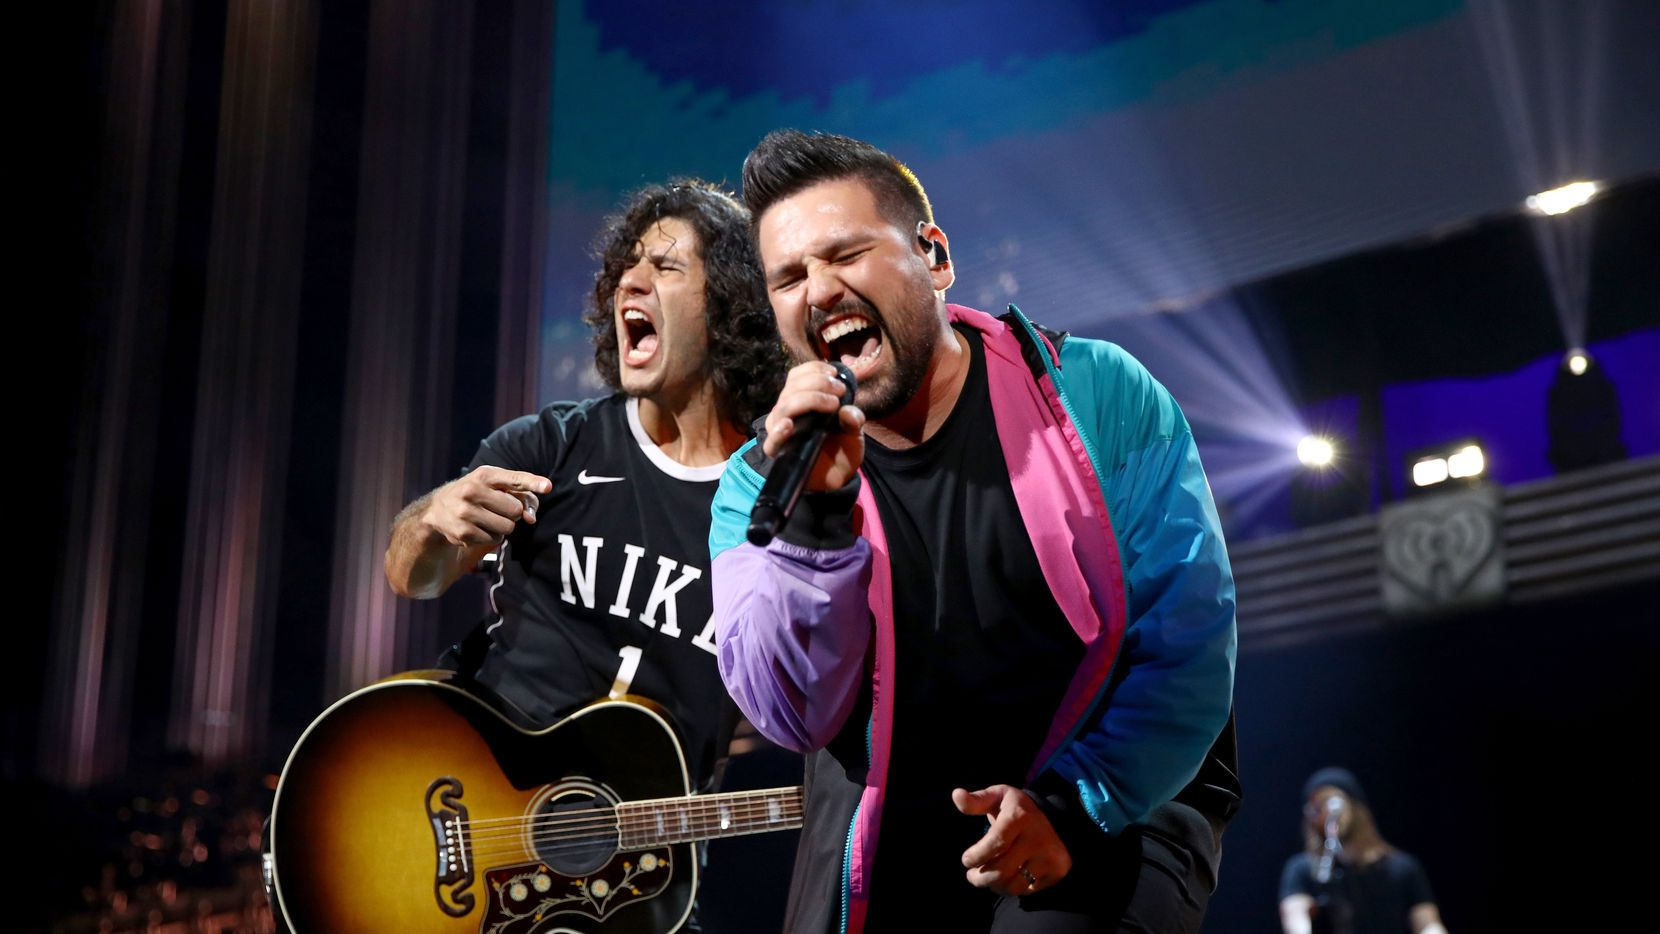 Dan Smyers (left) and Shay Mooney of Dan + Shay performed during the 2019 iHeartCountry Festival at the Frank Erwin Center in Austin on May 4, 2019.